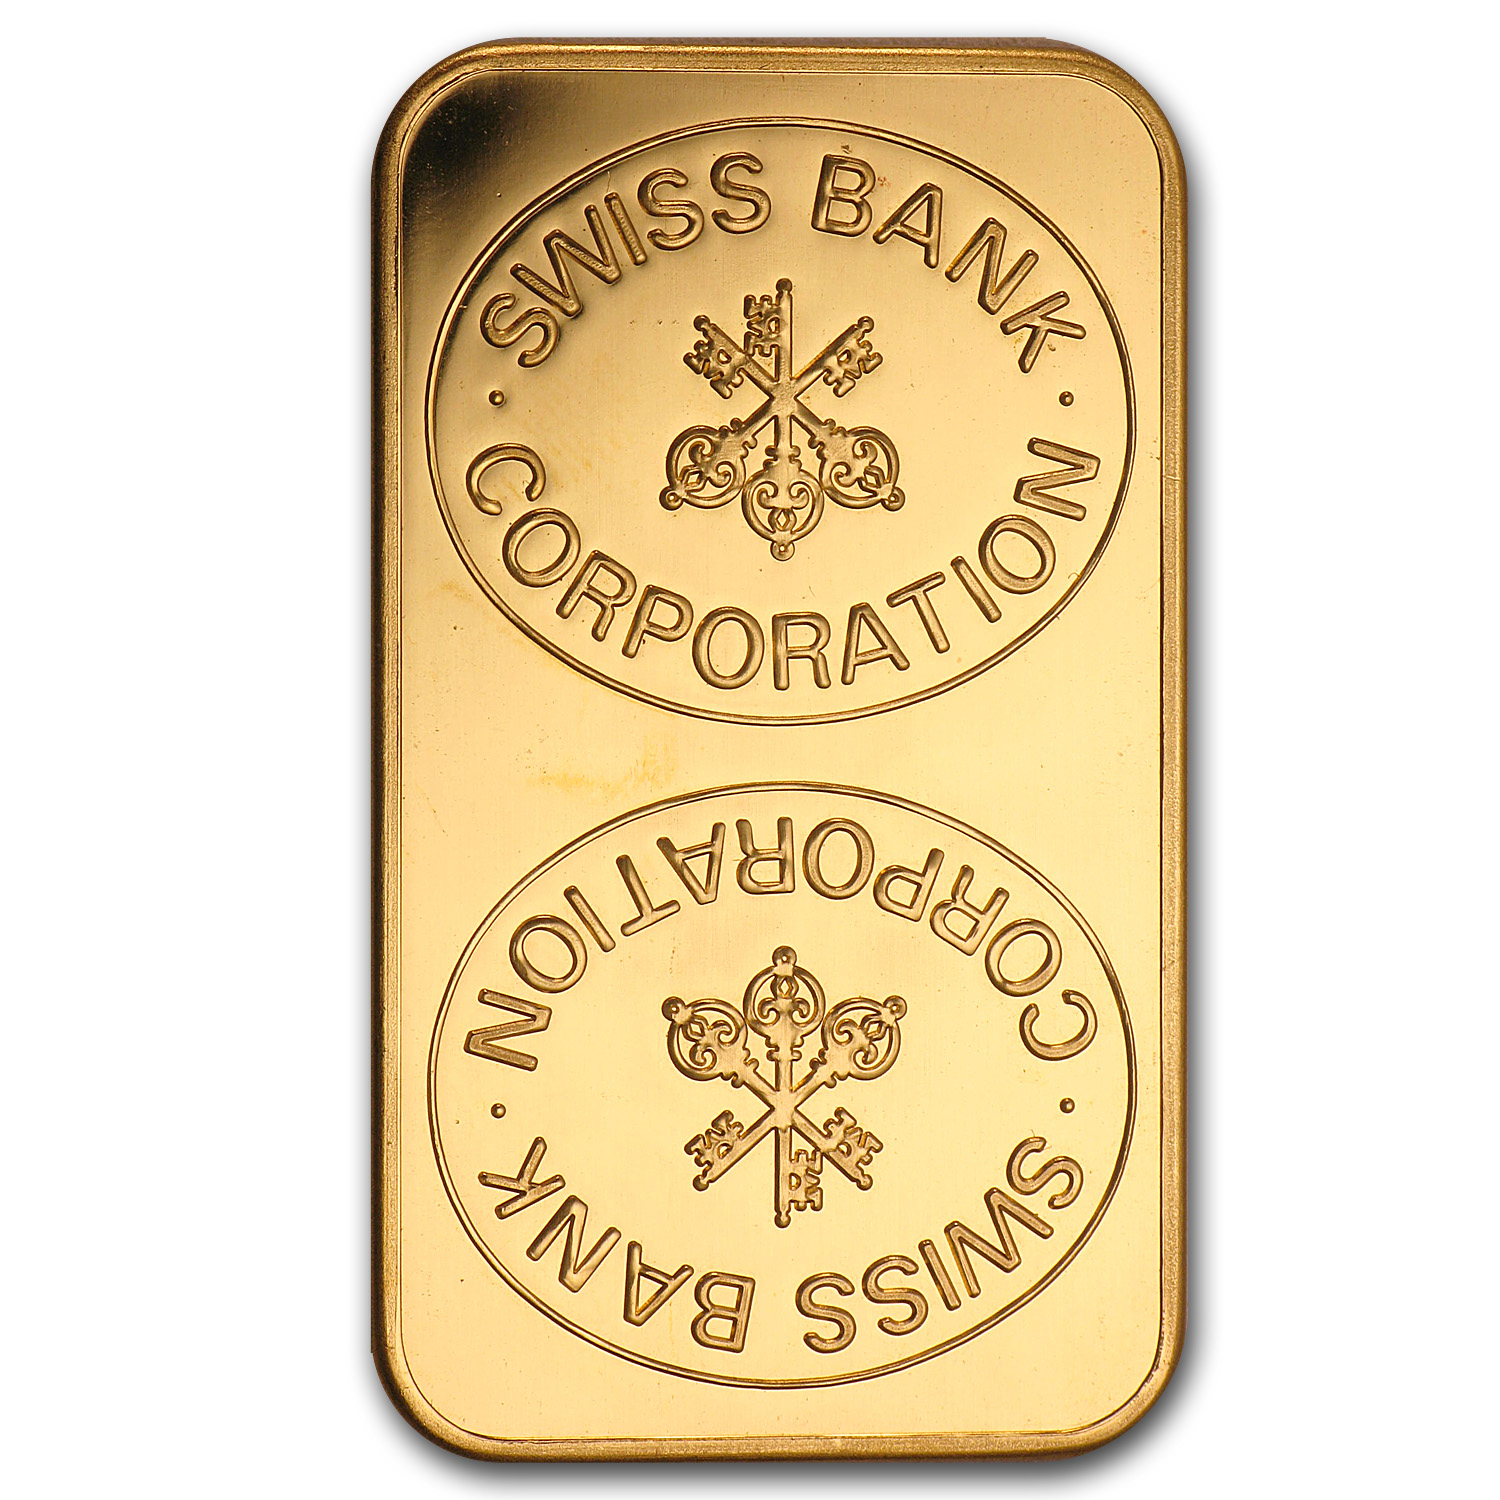 1 oz Gold Bars - Swiss Bank Corporation